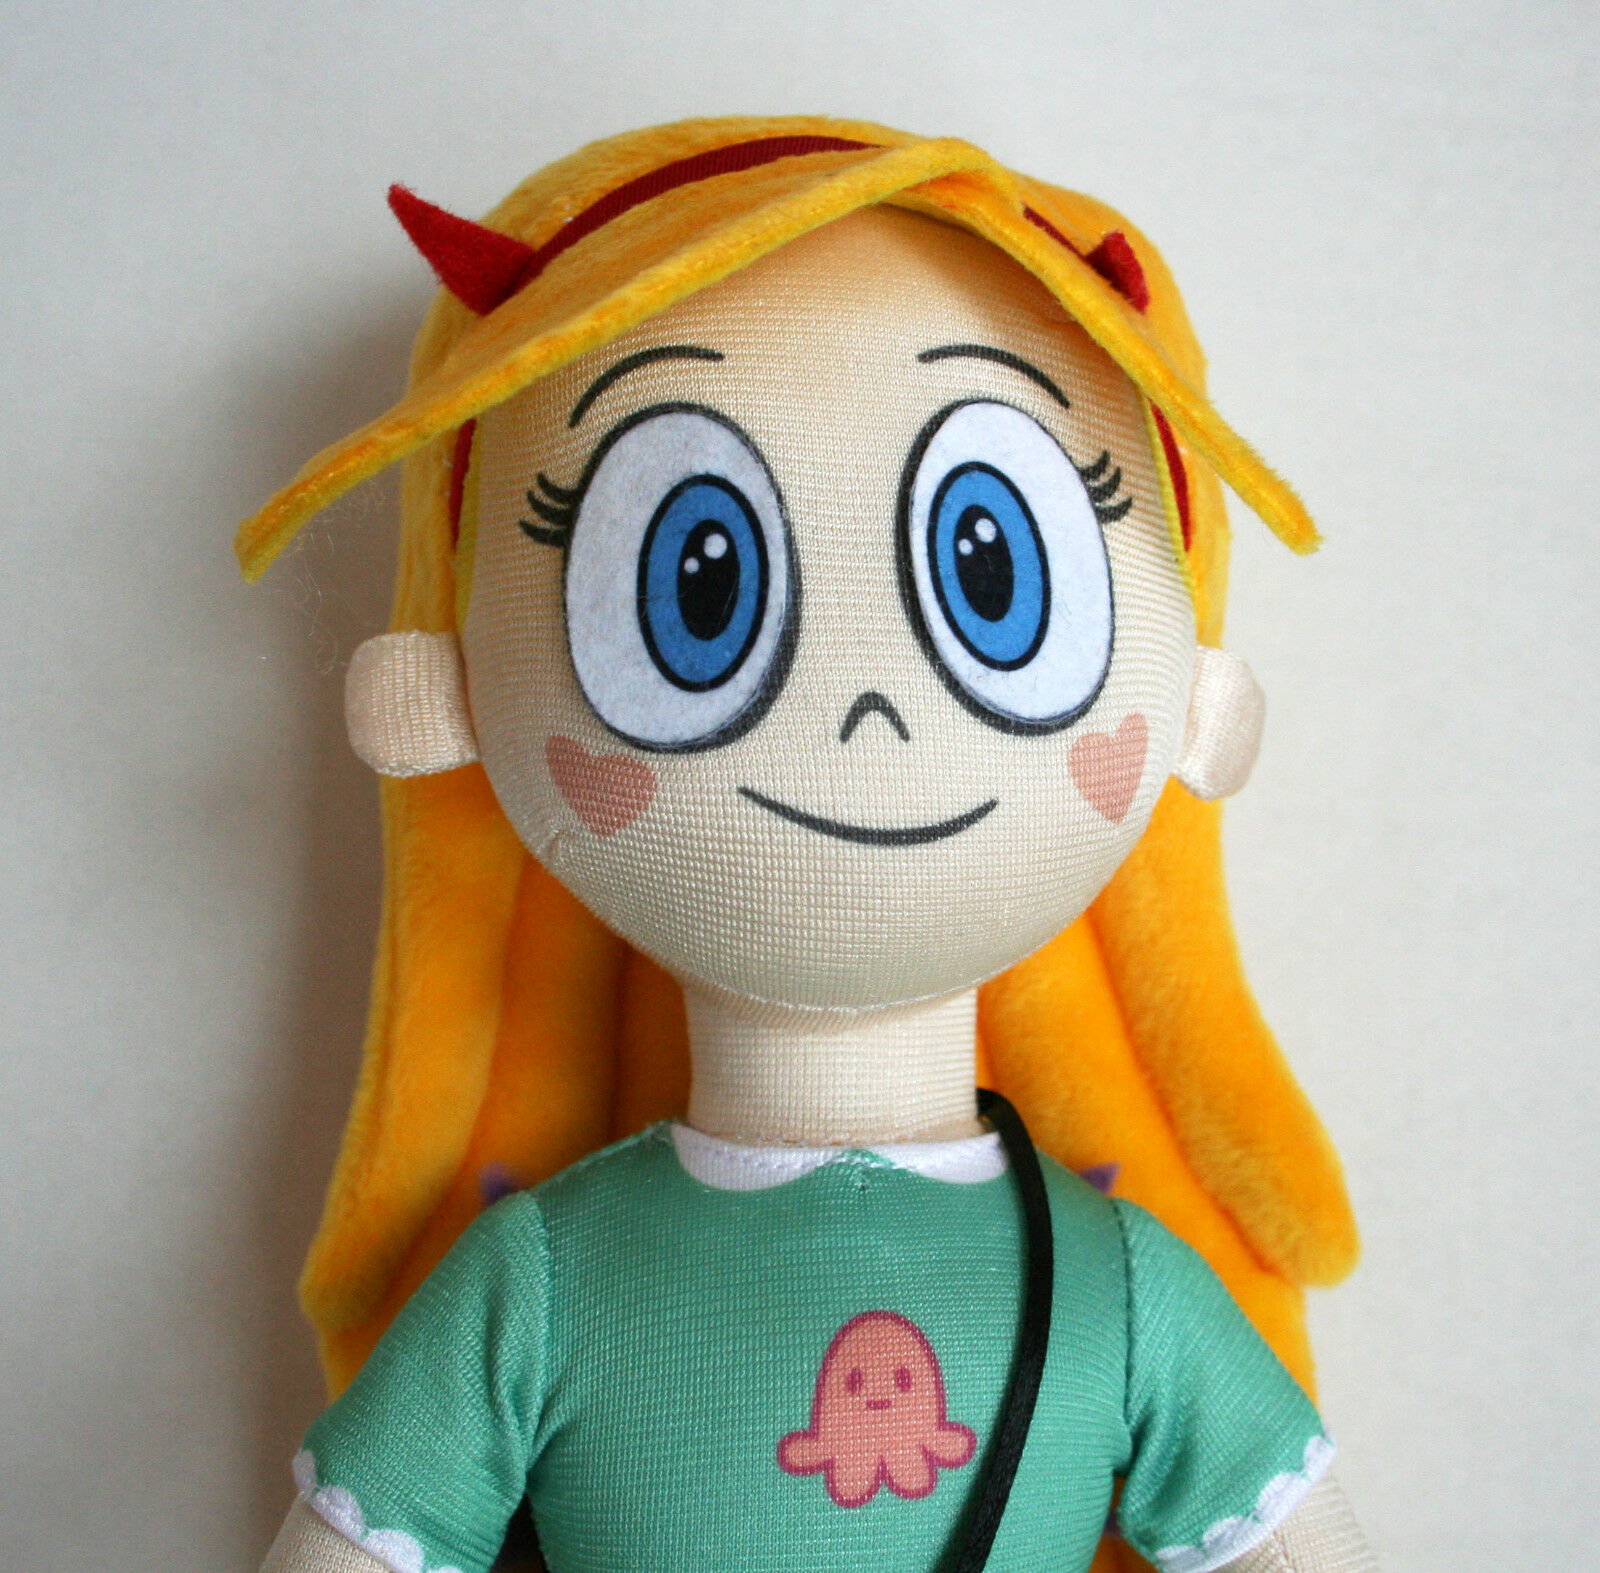 Star vs. the forces of evil Star Butterfly Plush Doll toy